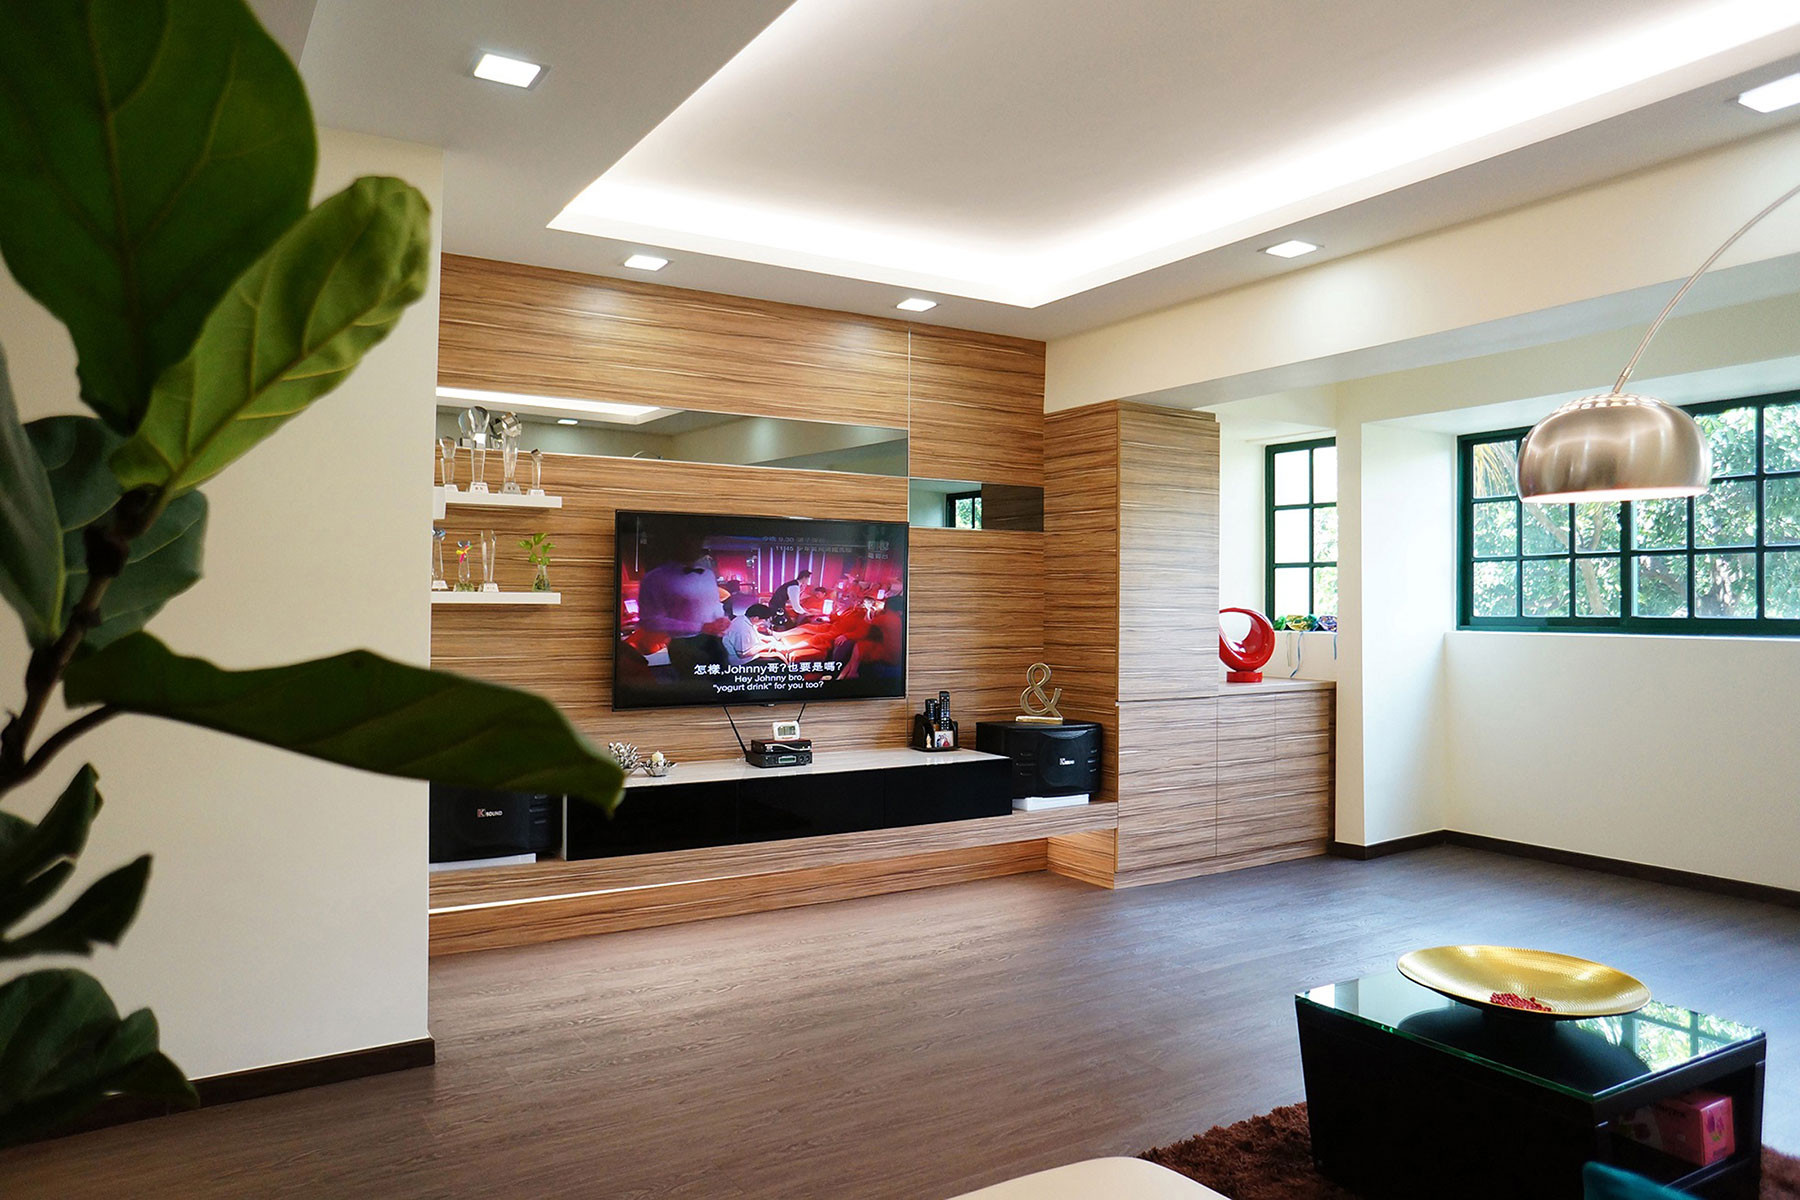 Best ideas about Family Room Wall Decorations . Save or Pin Eco Friendly Flooring The Future of Space Decoration Now.